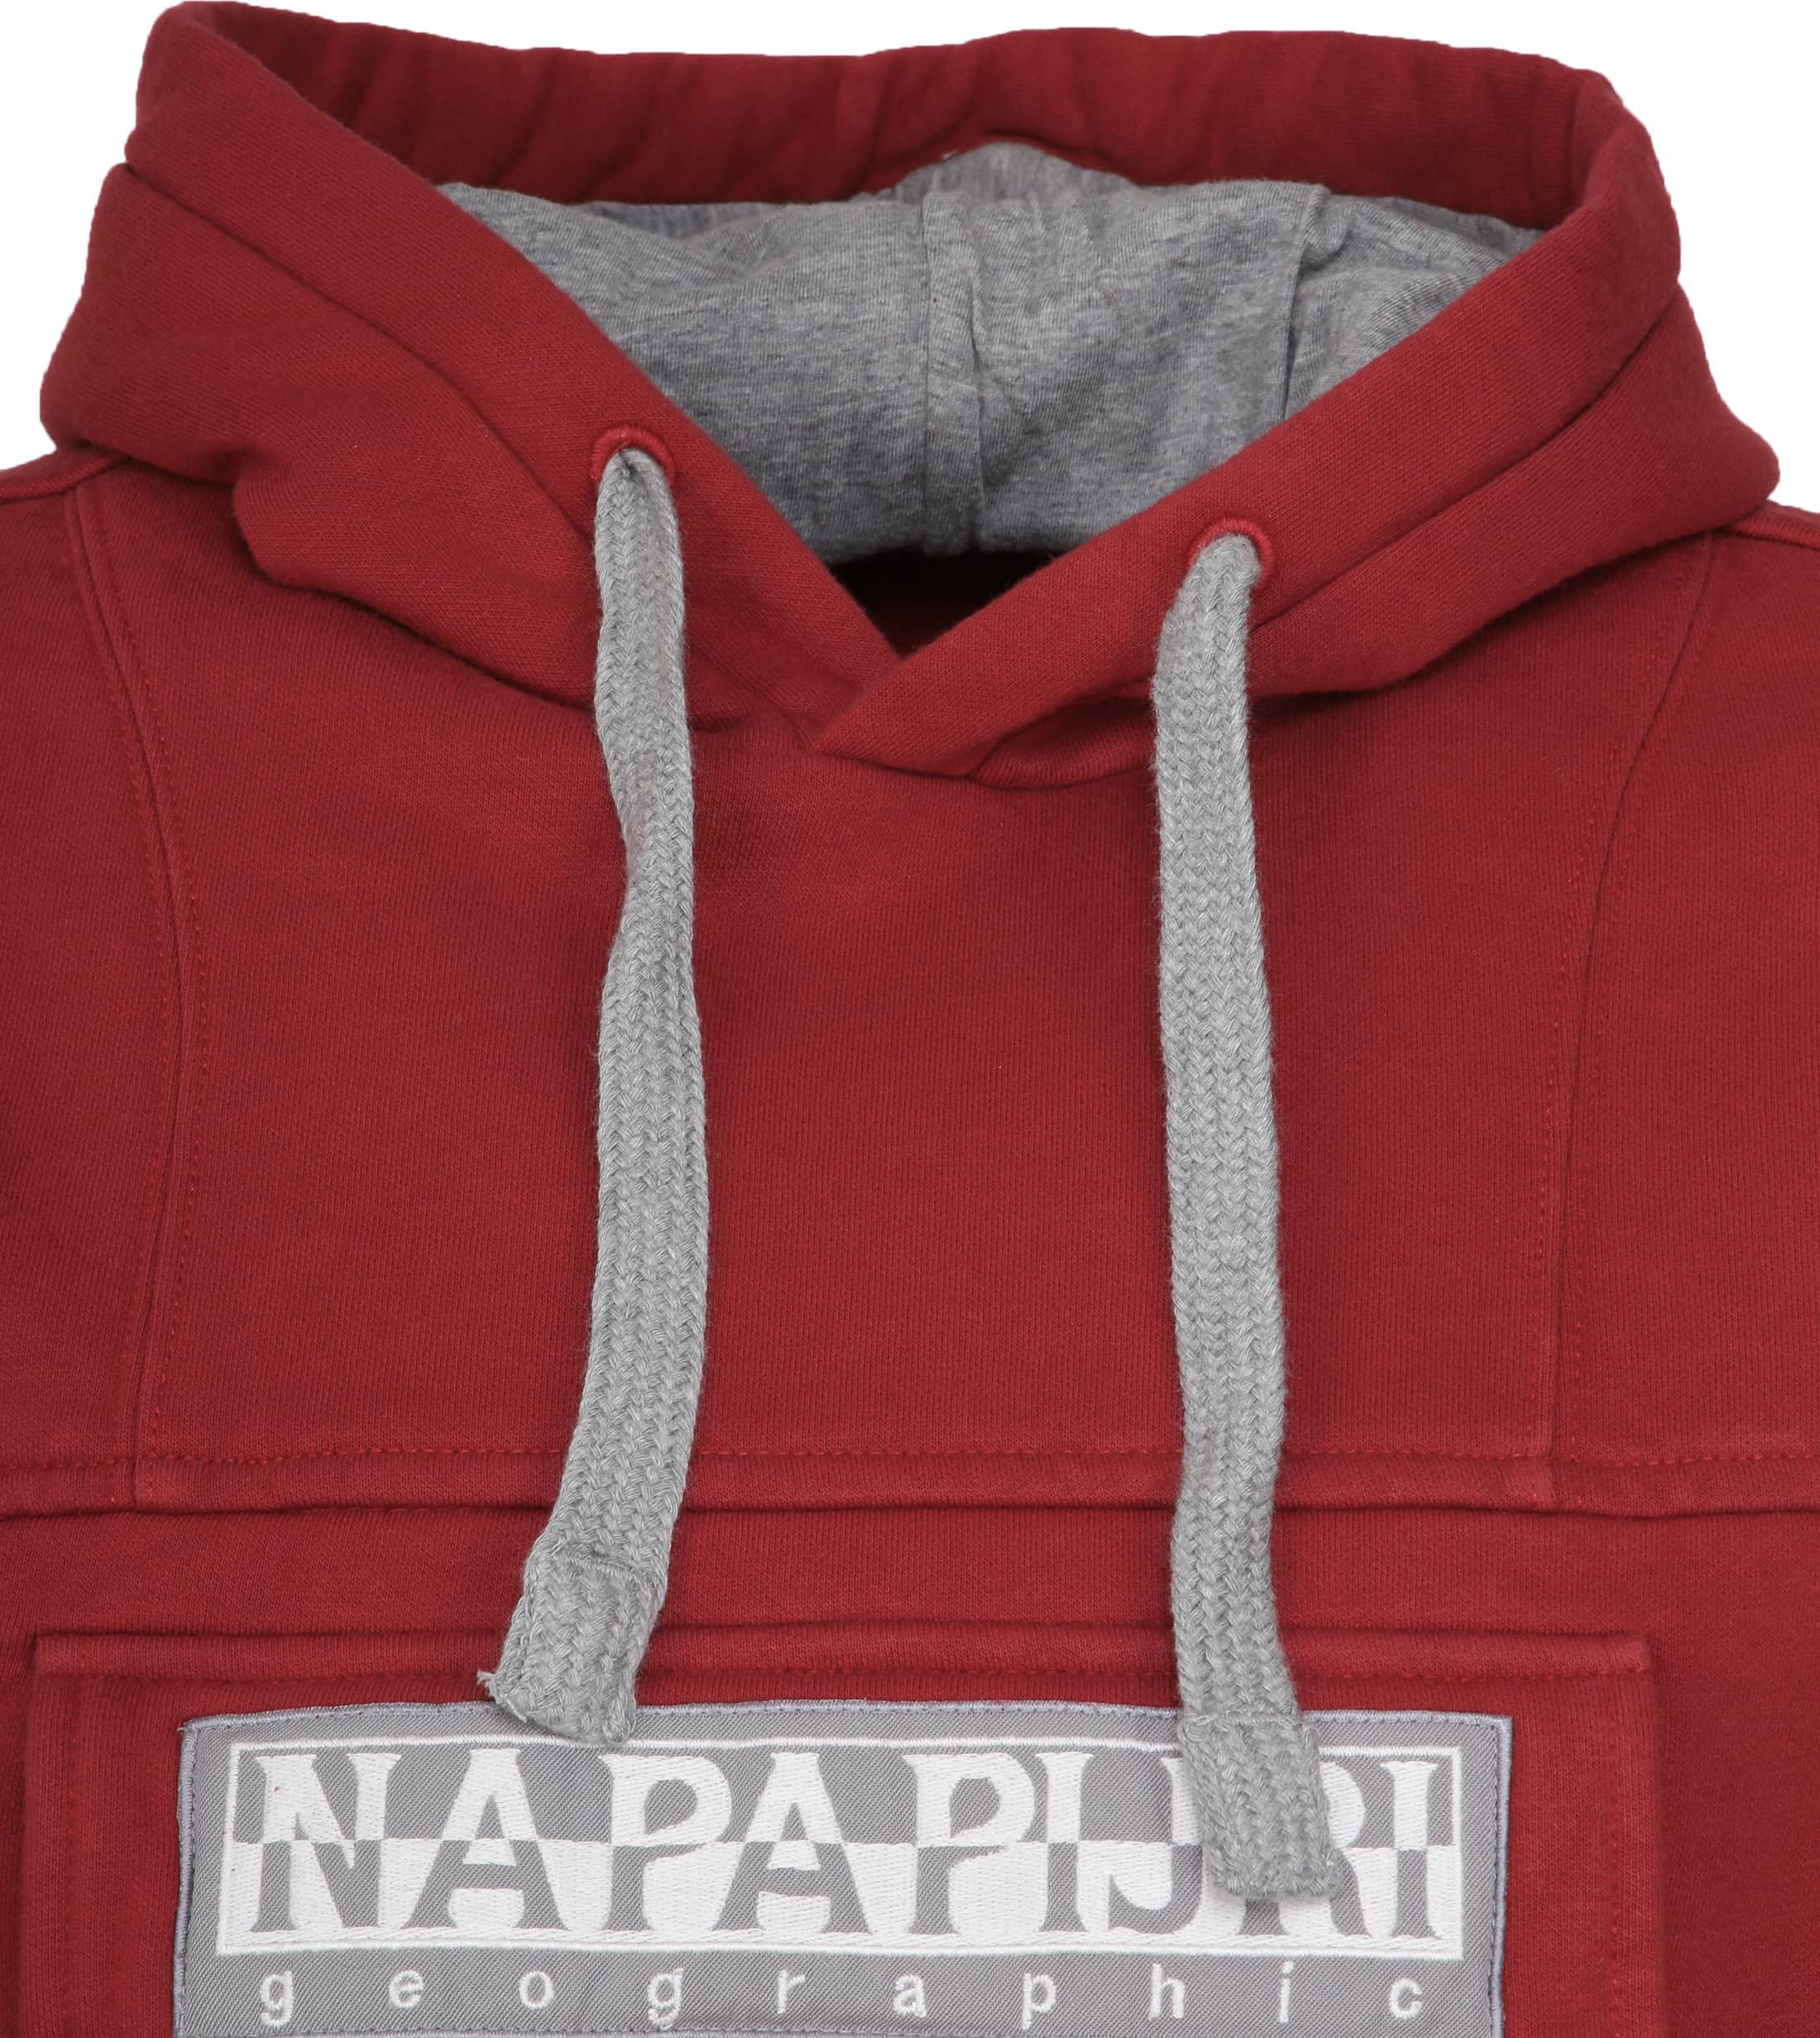 Napapijri Sweater Burgee Bordeaux foto 1